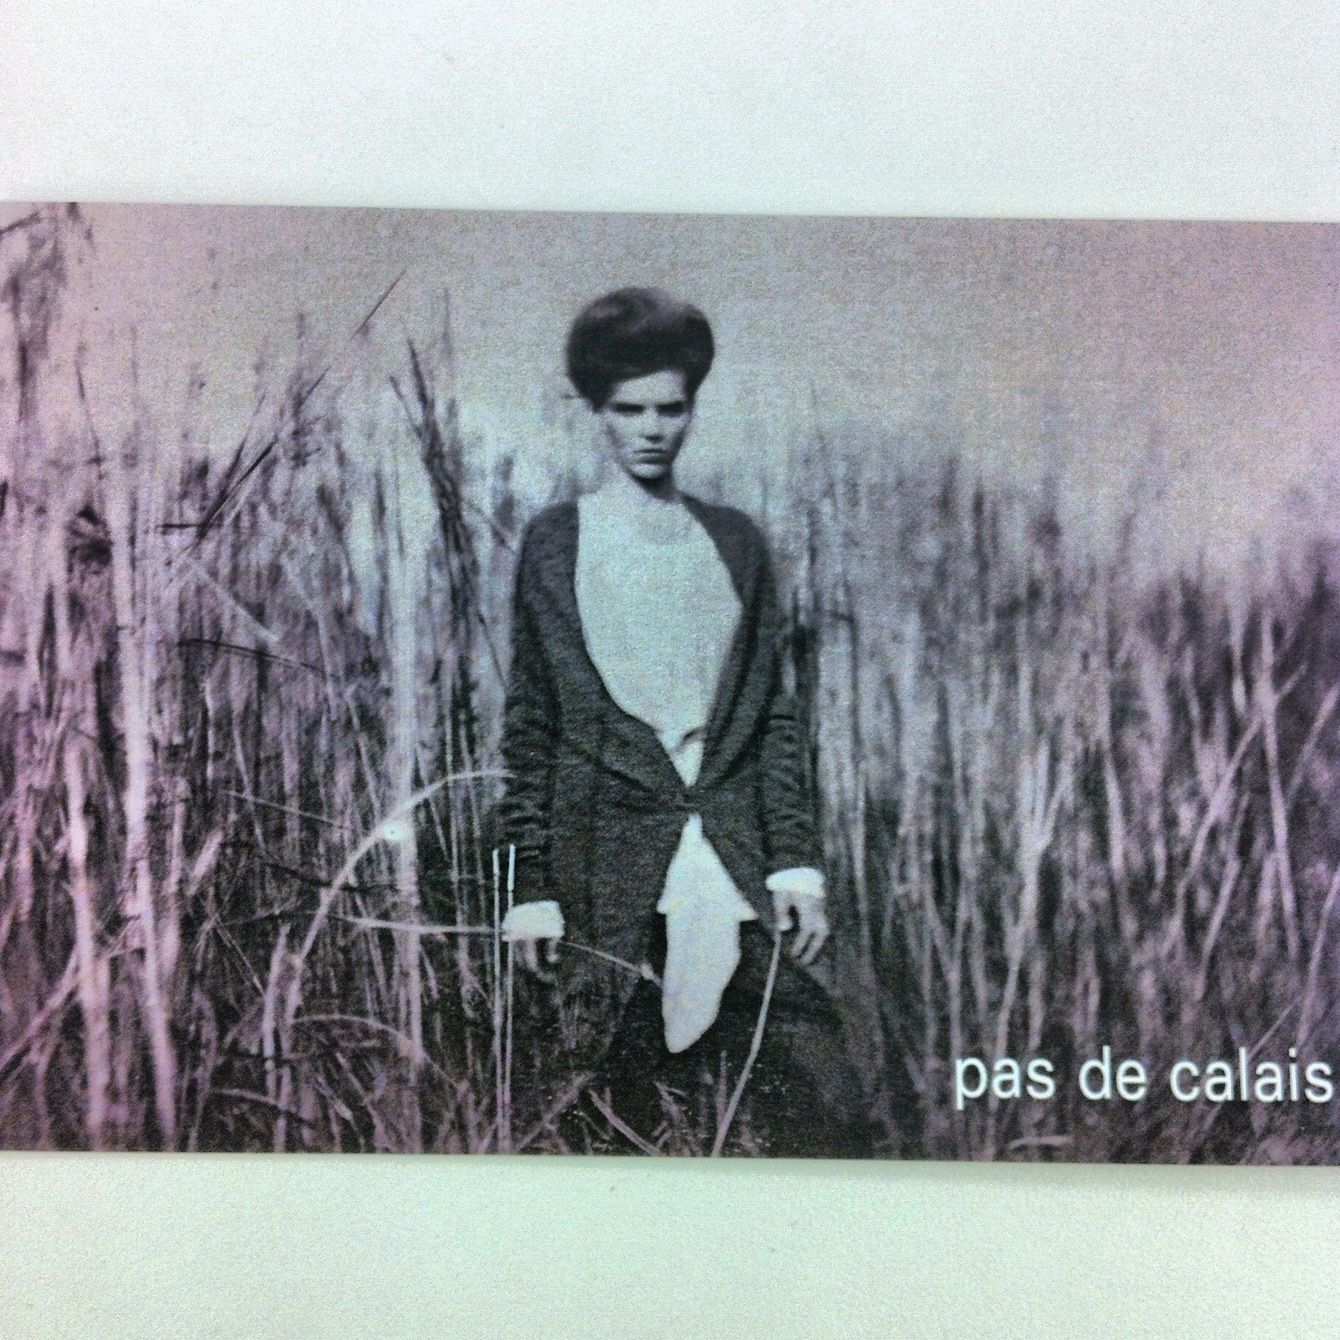 #fashion#pasdecalais#Showroom